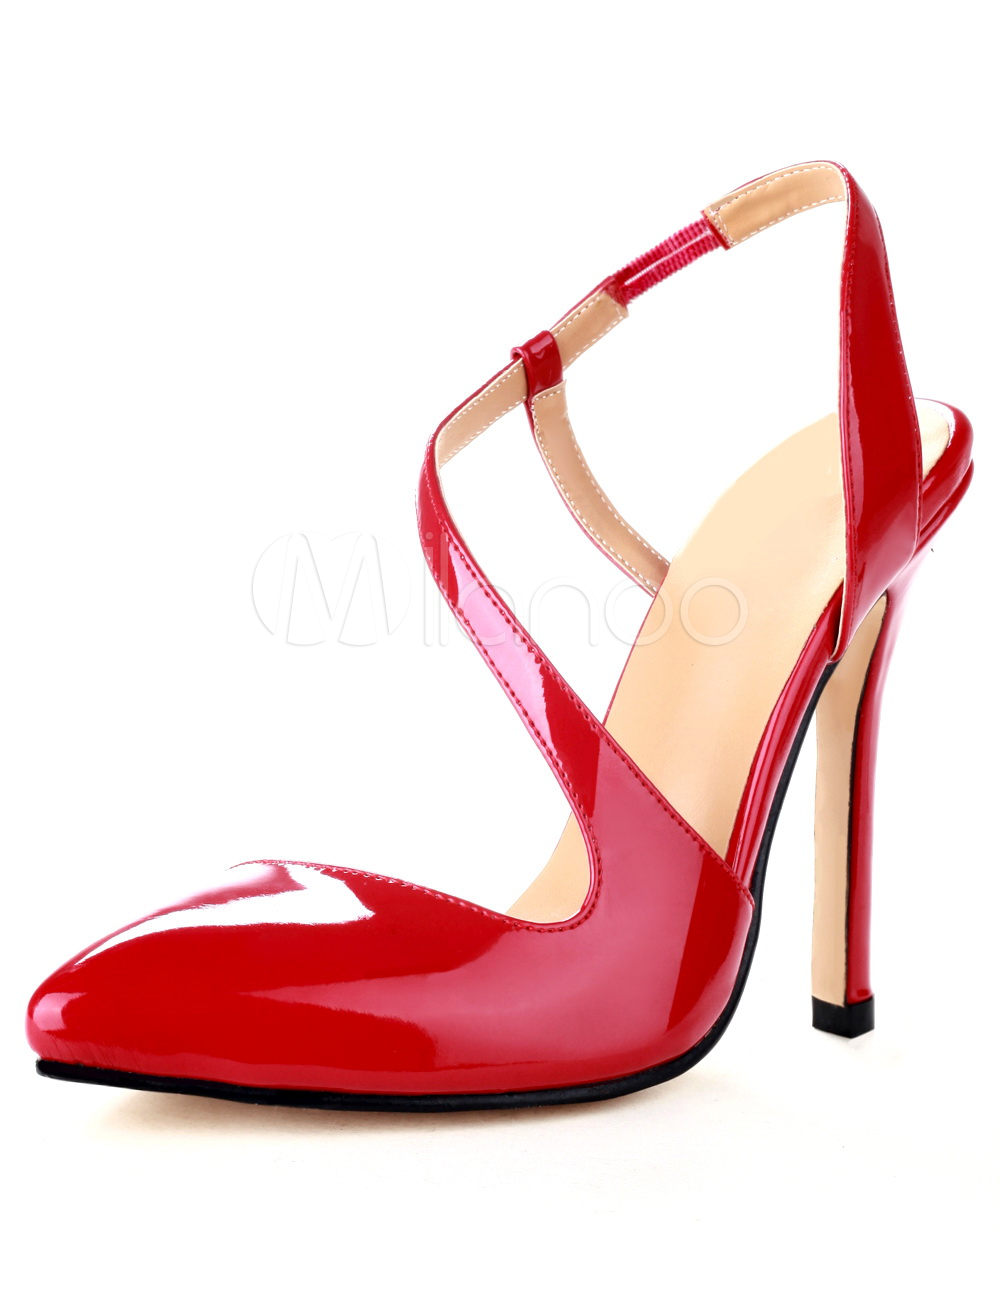 Red Pointed Toe Stiletto Heel Patent Suede Woman's High Heels ...